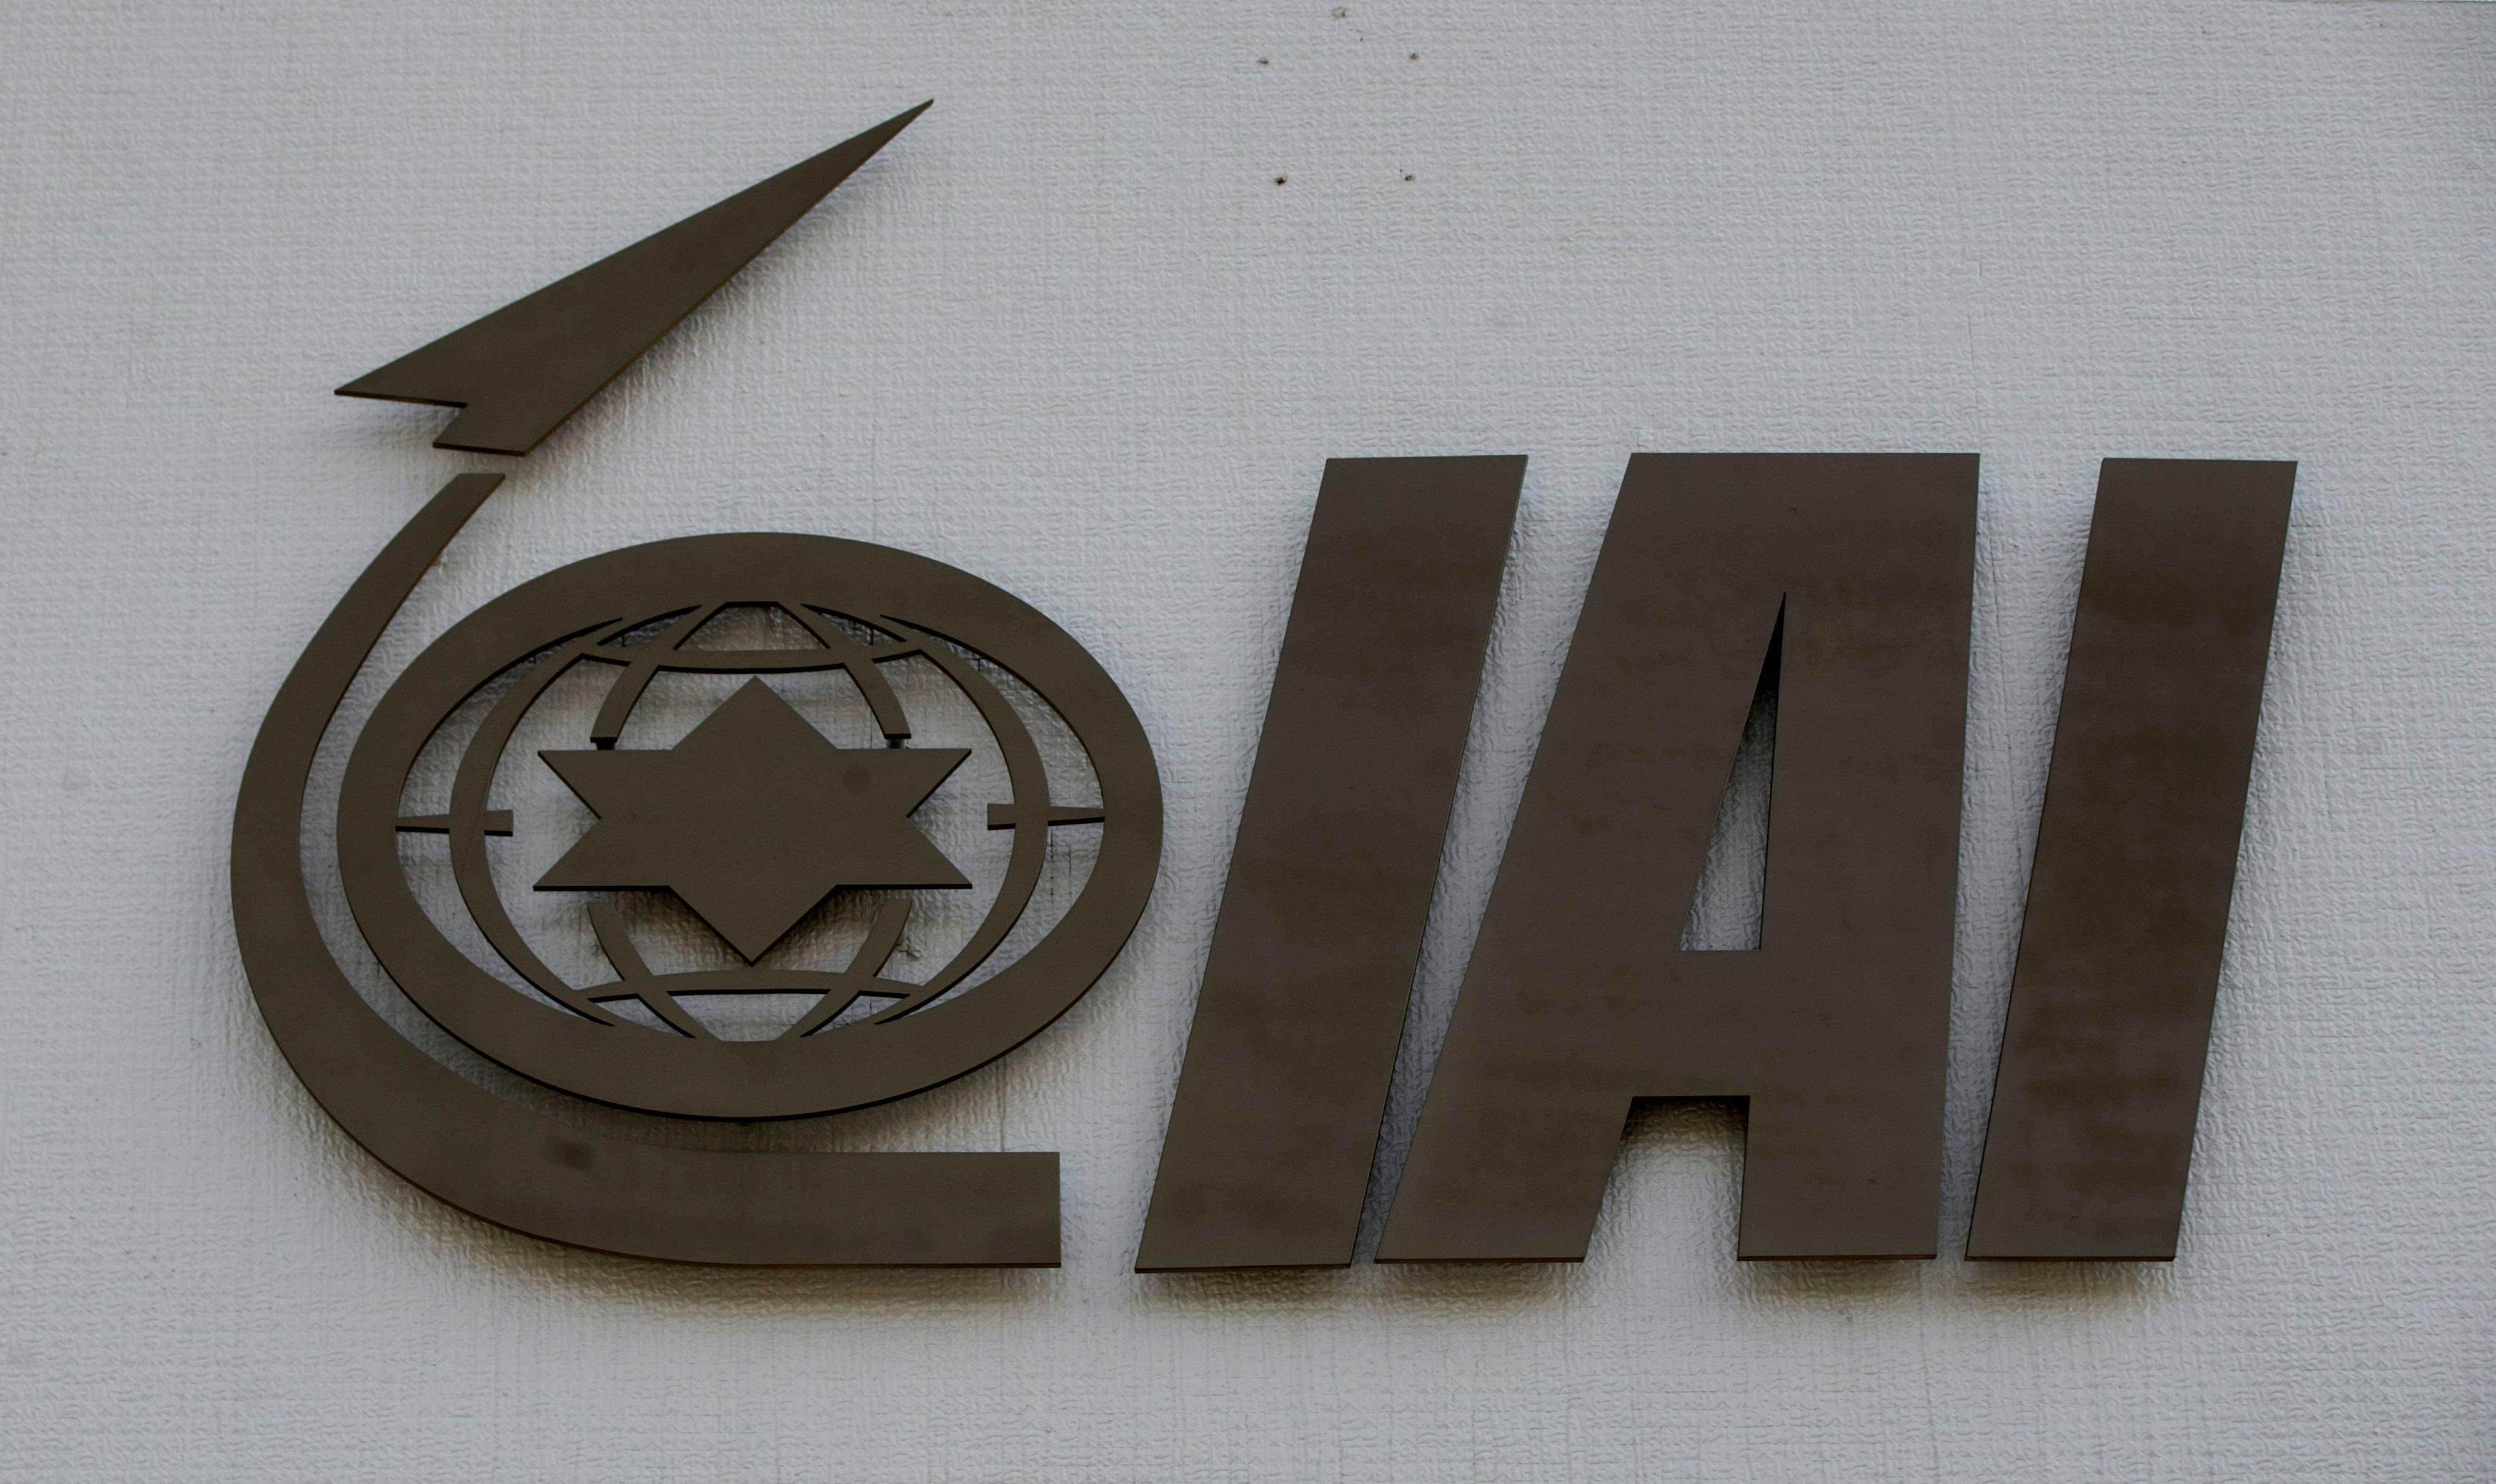 Israel Aerospace eyes U.S. government contracts, acquisitions